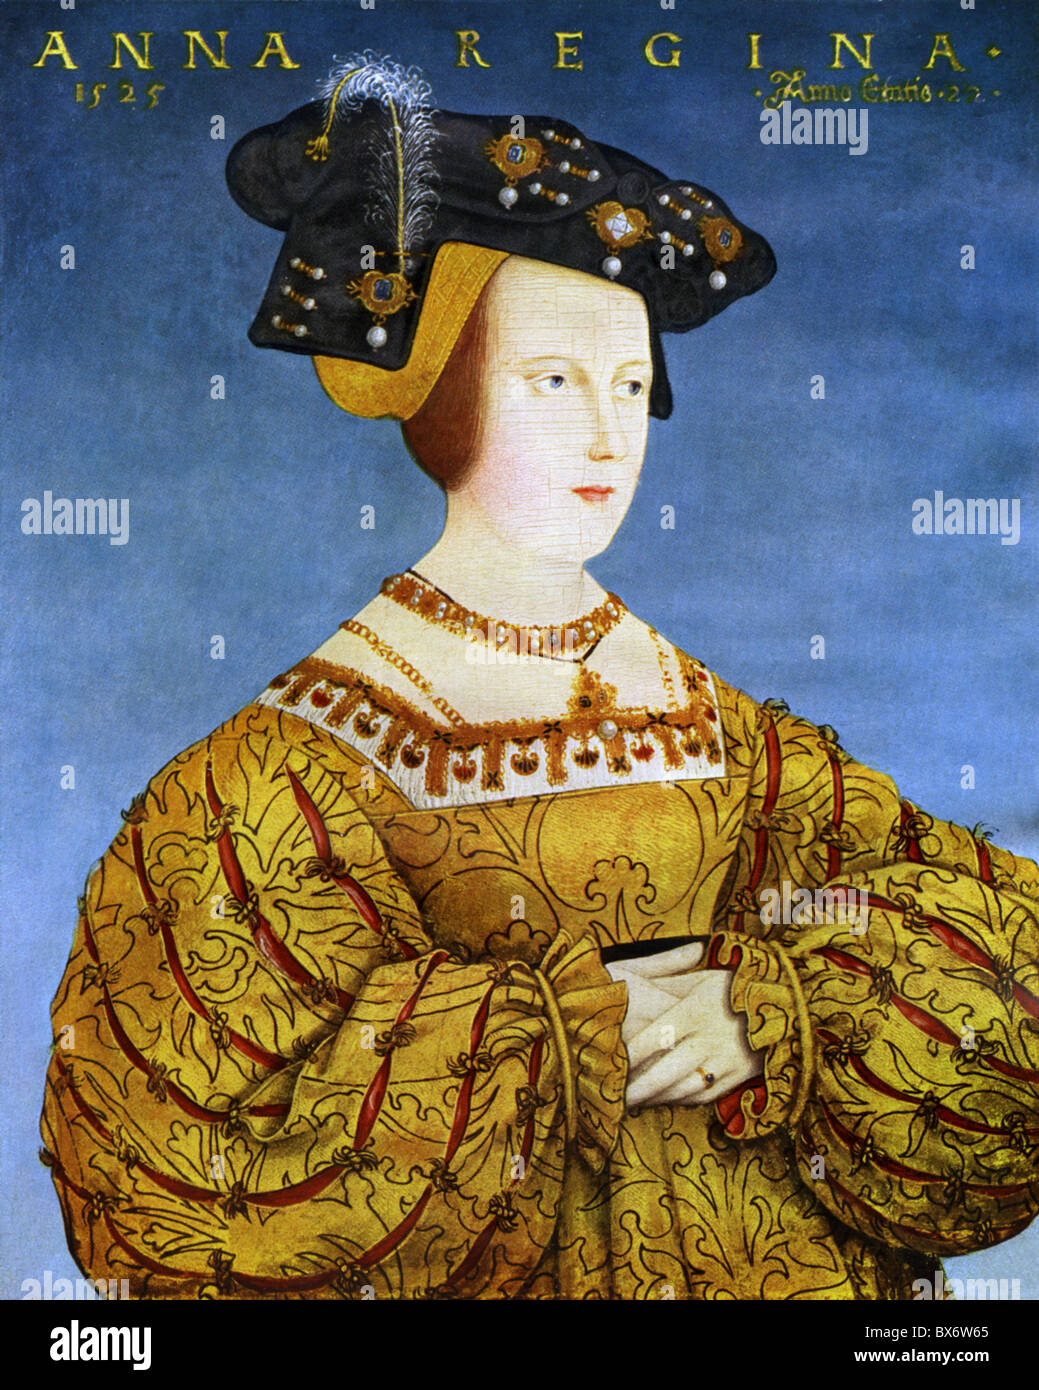 Anna, 23.7.1503 - 27.1.1547, Queen of the Romans 5.1.1531 - 27.1.1547, portrait, print after painting by Hans Maler, Stock Photo